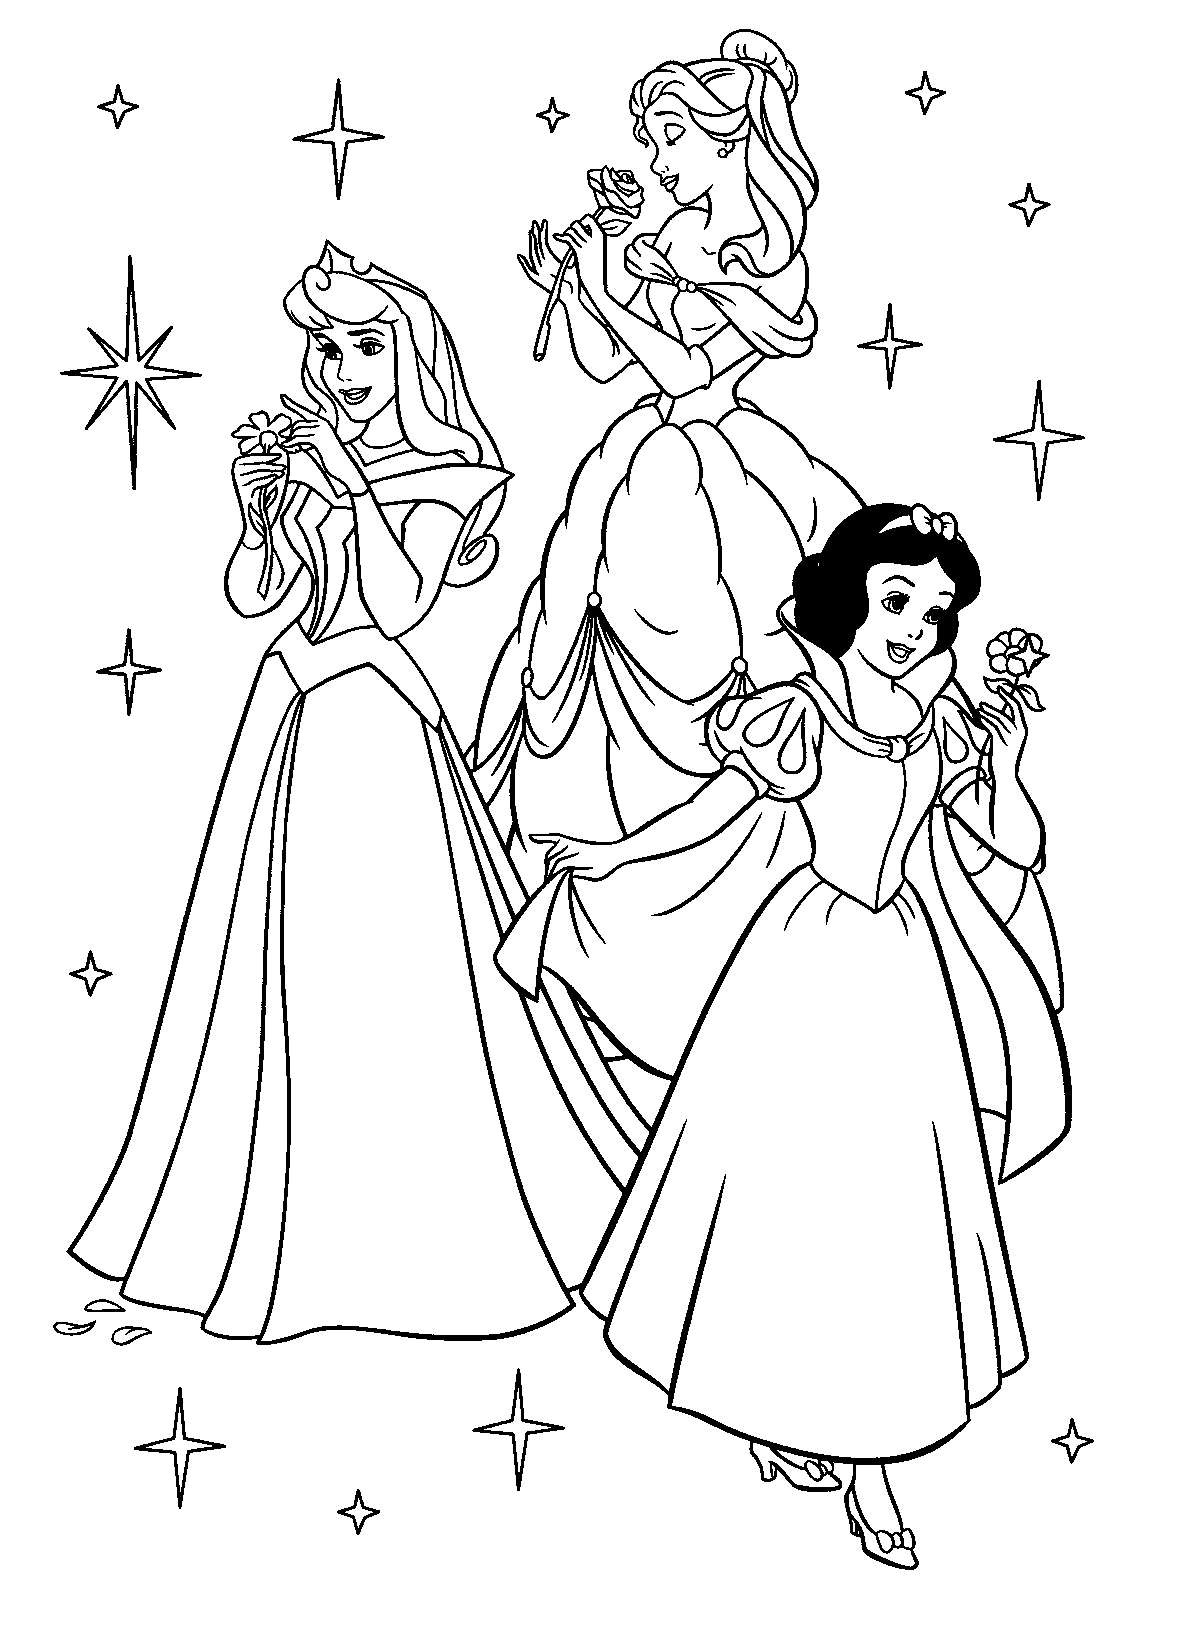 disney princess coloring pages - Disney Princess Coloring Pages To Print For Free